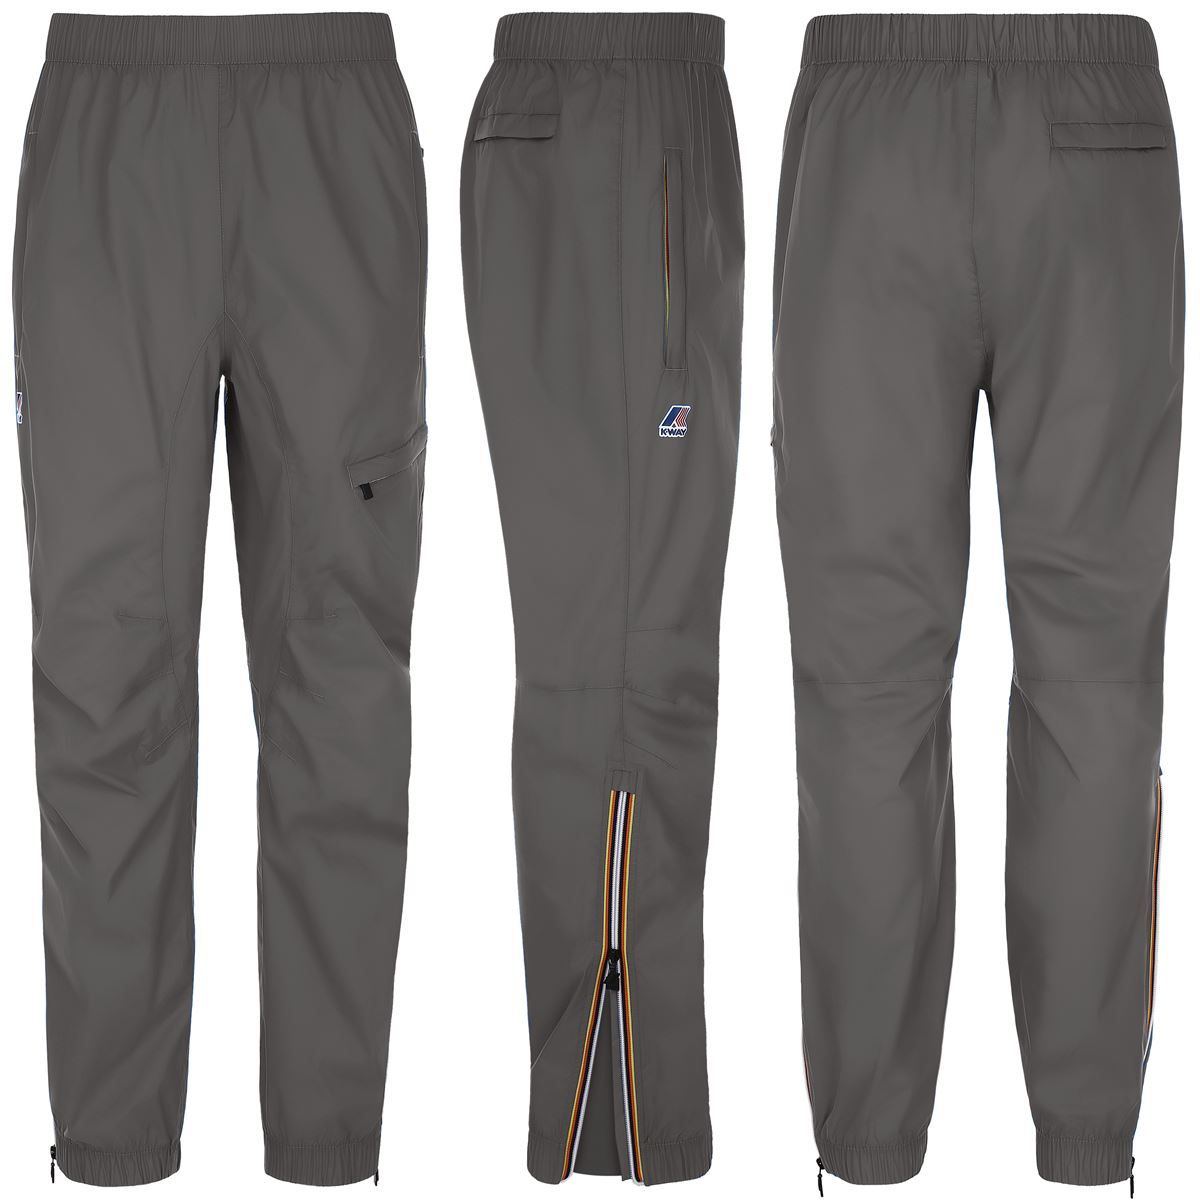 K-Way Pants LE VRAI 3.0 EDGARD Man Woman Sport Trousers